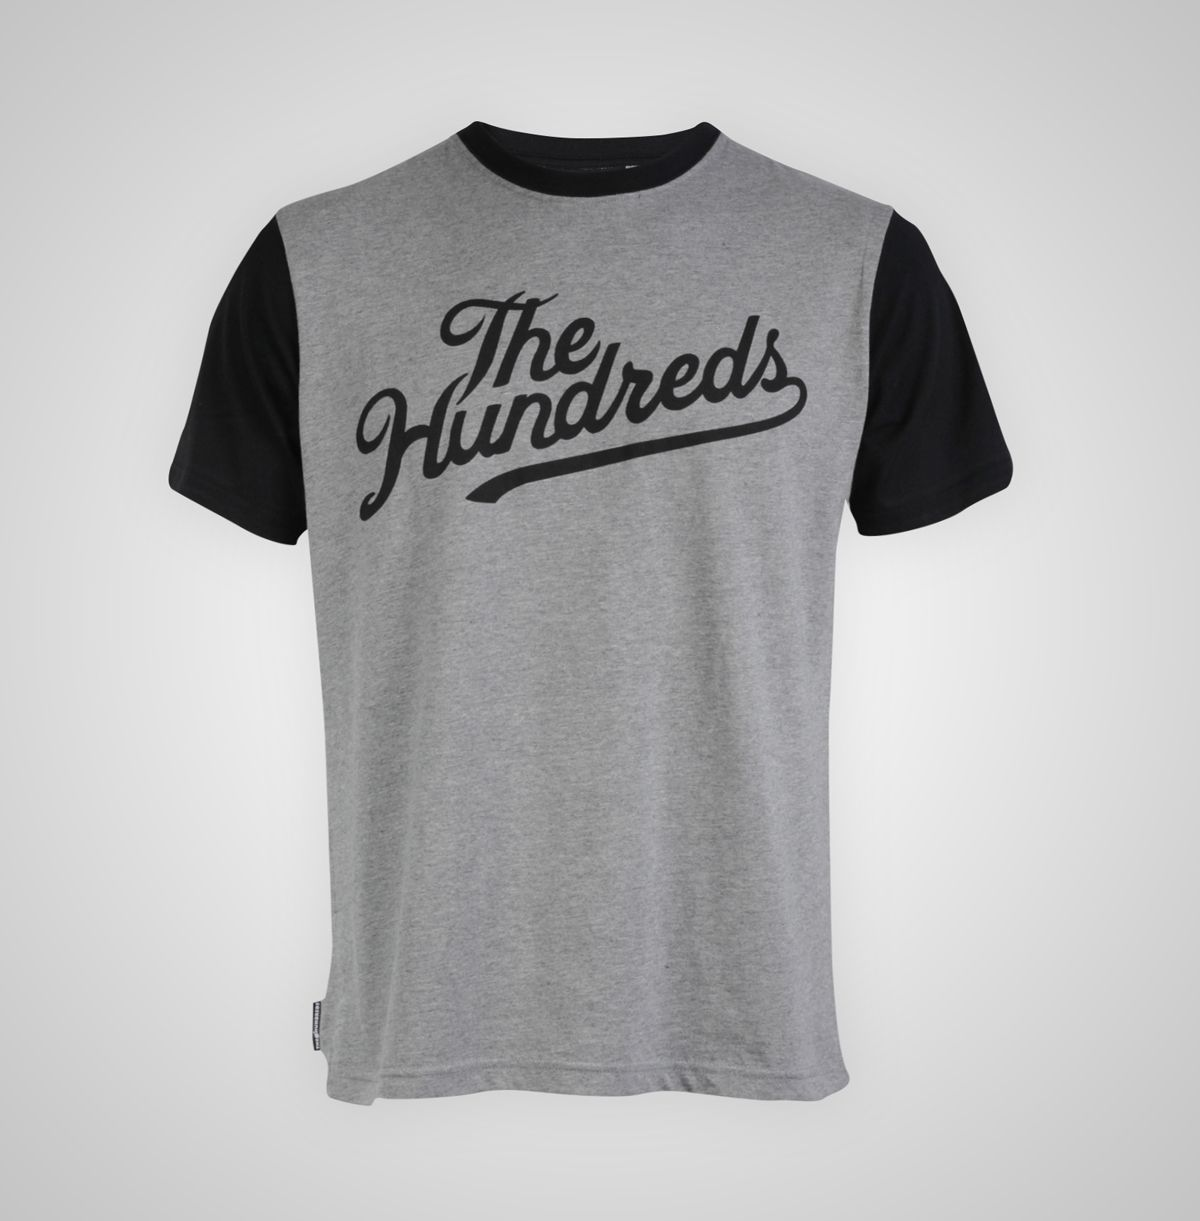 Heather Grey Conrad T-Shirt by The Hundreds - Recreo, UK